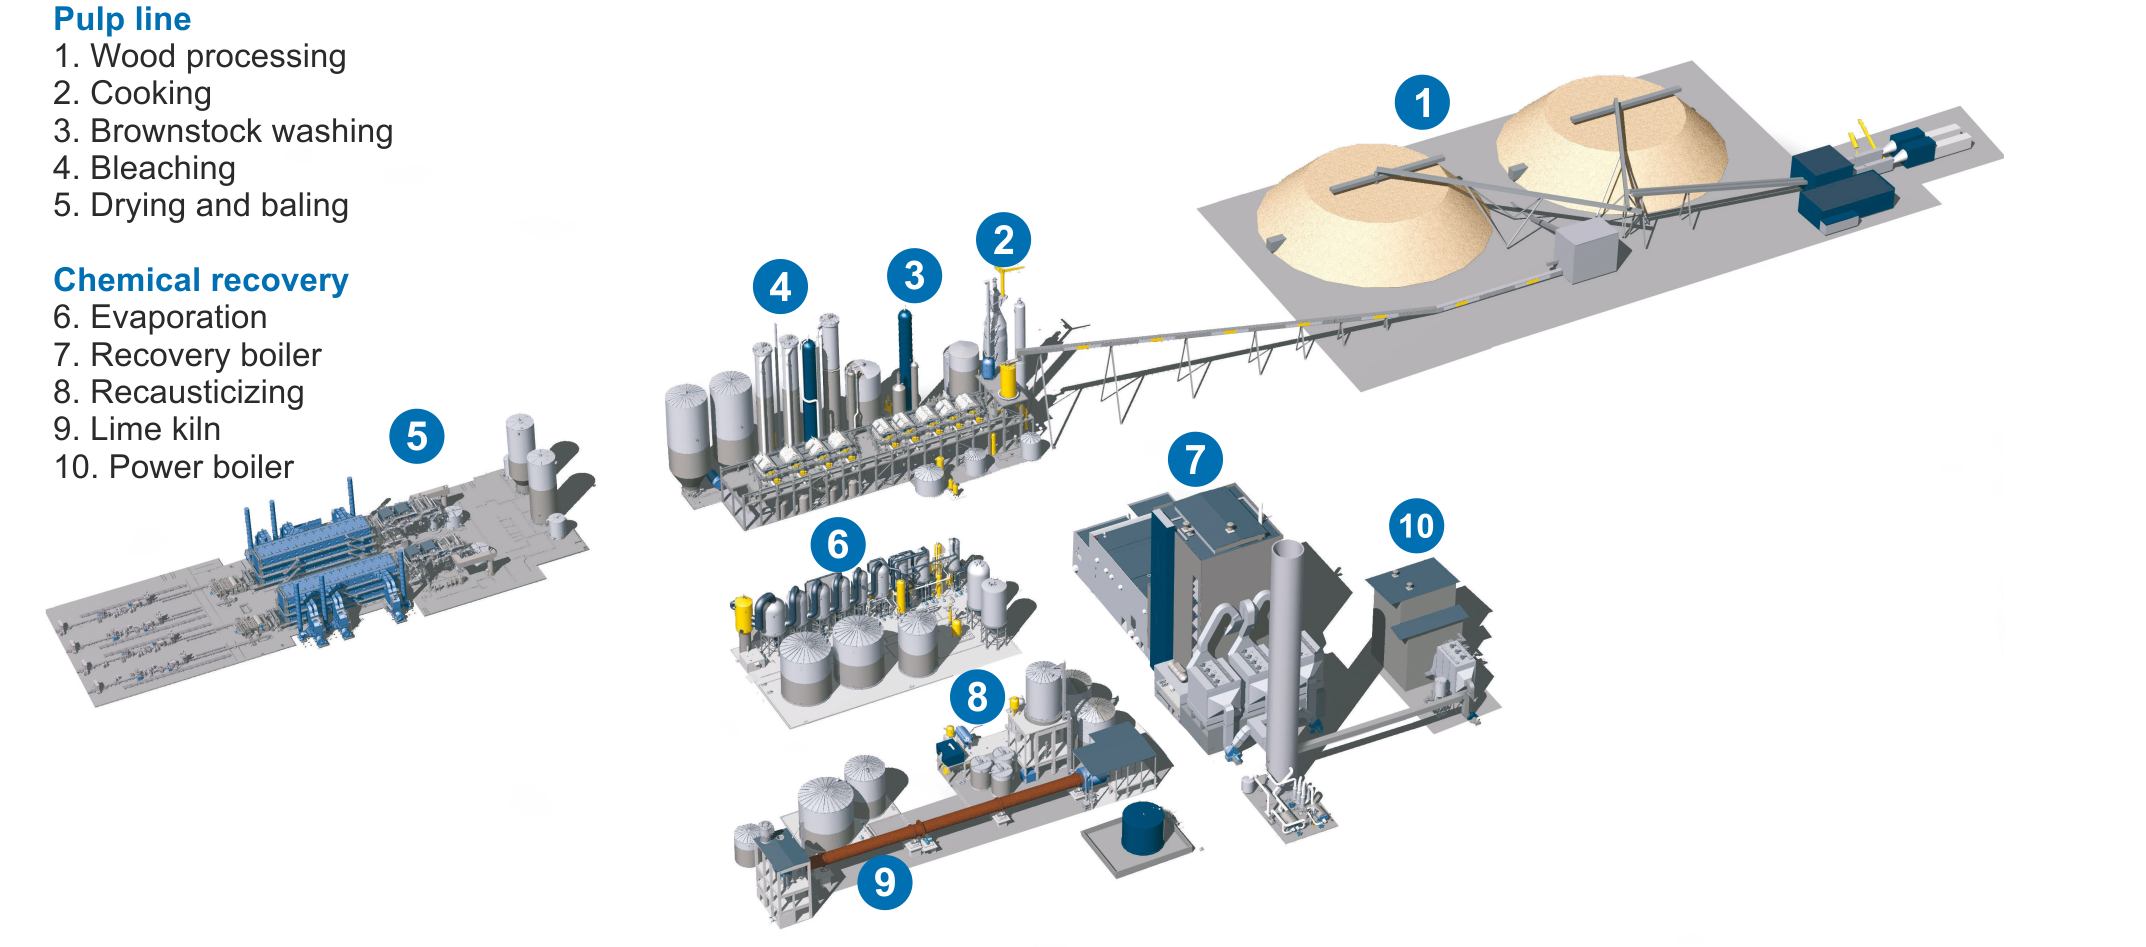 Drawing of a pulp mill, with labeled component technologies and processes